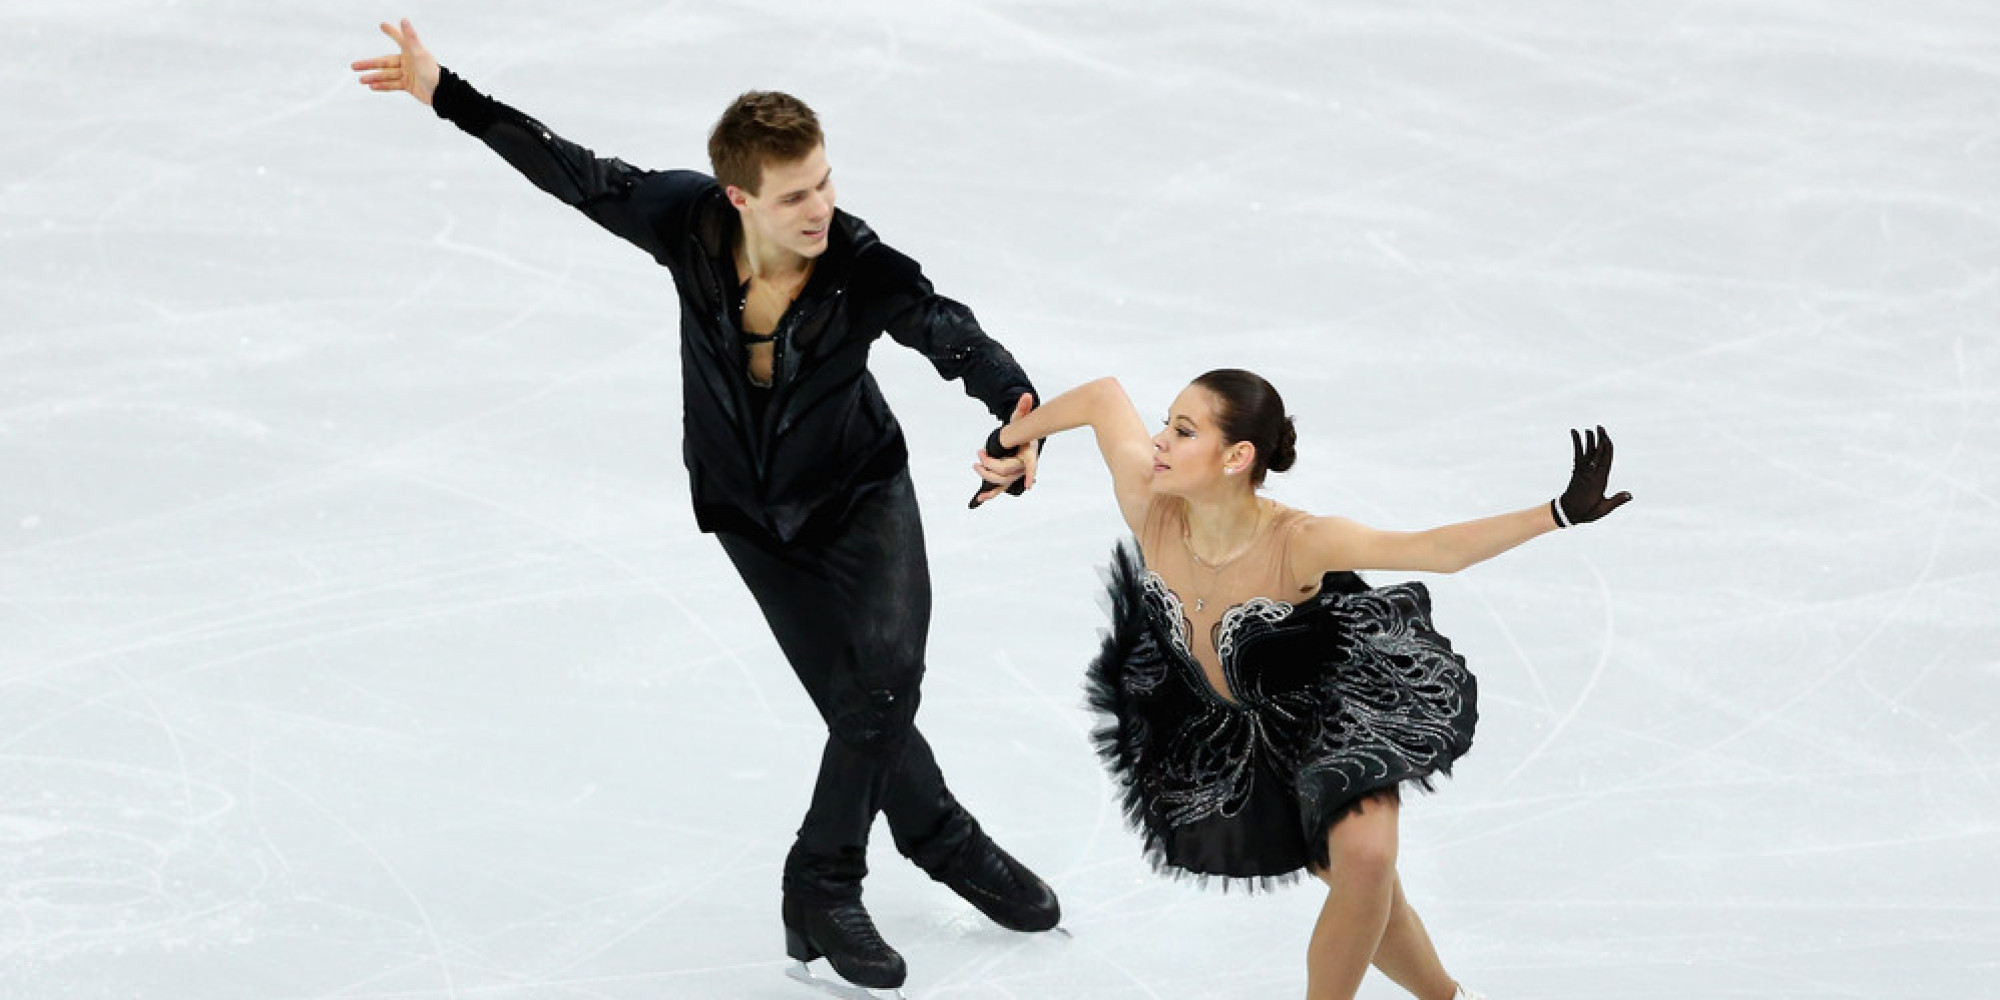 18 Of The Most Eye-Catching Costumes From The Olympic Figure Skating Team Event | HuffPost  sc 1 st  HuffPost & 18 Of The Most Eye-Catching Costumes From The Olympic Figure Skating ...